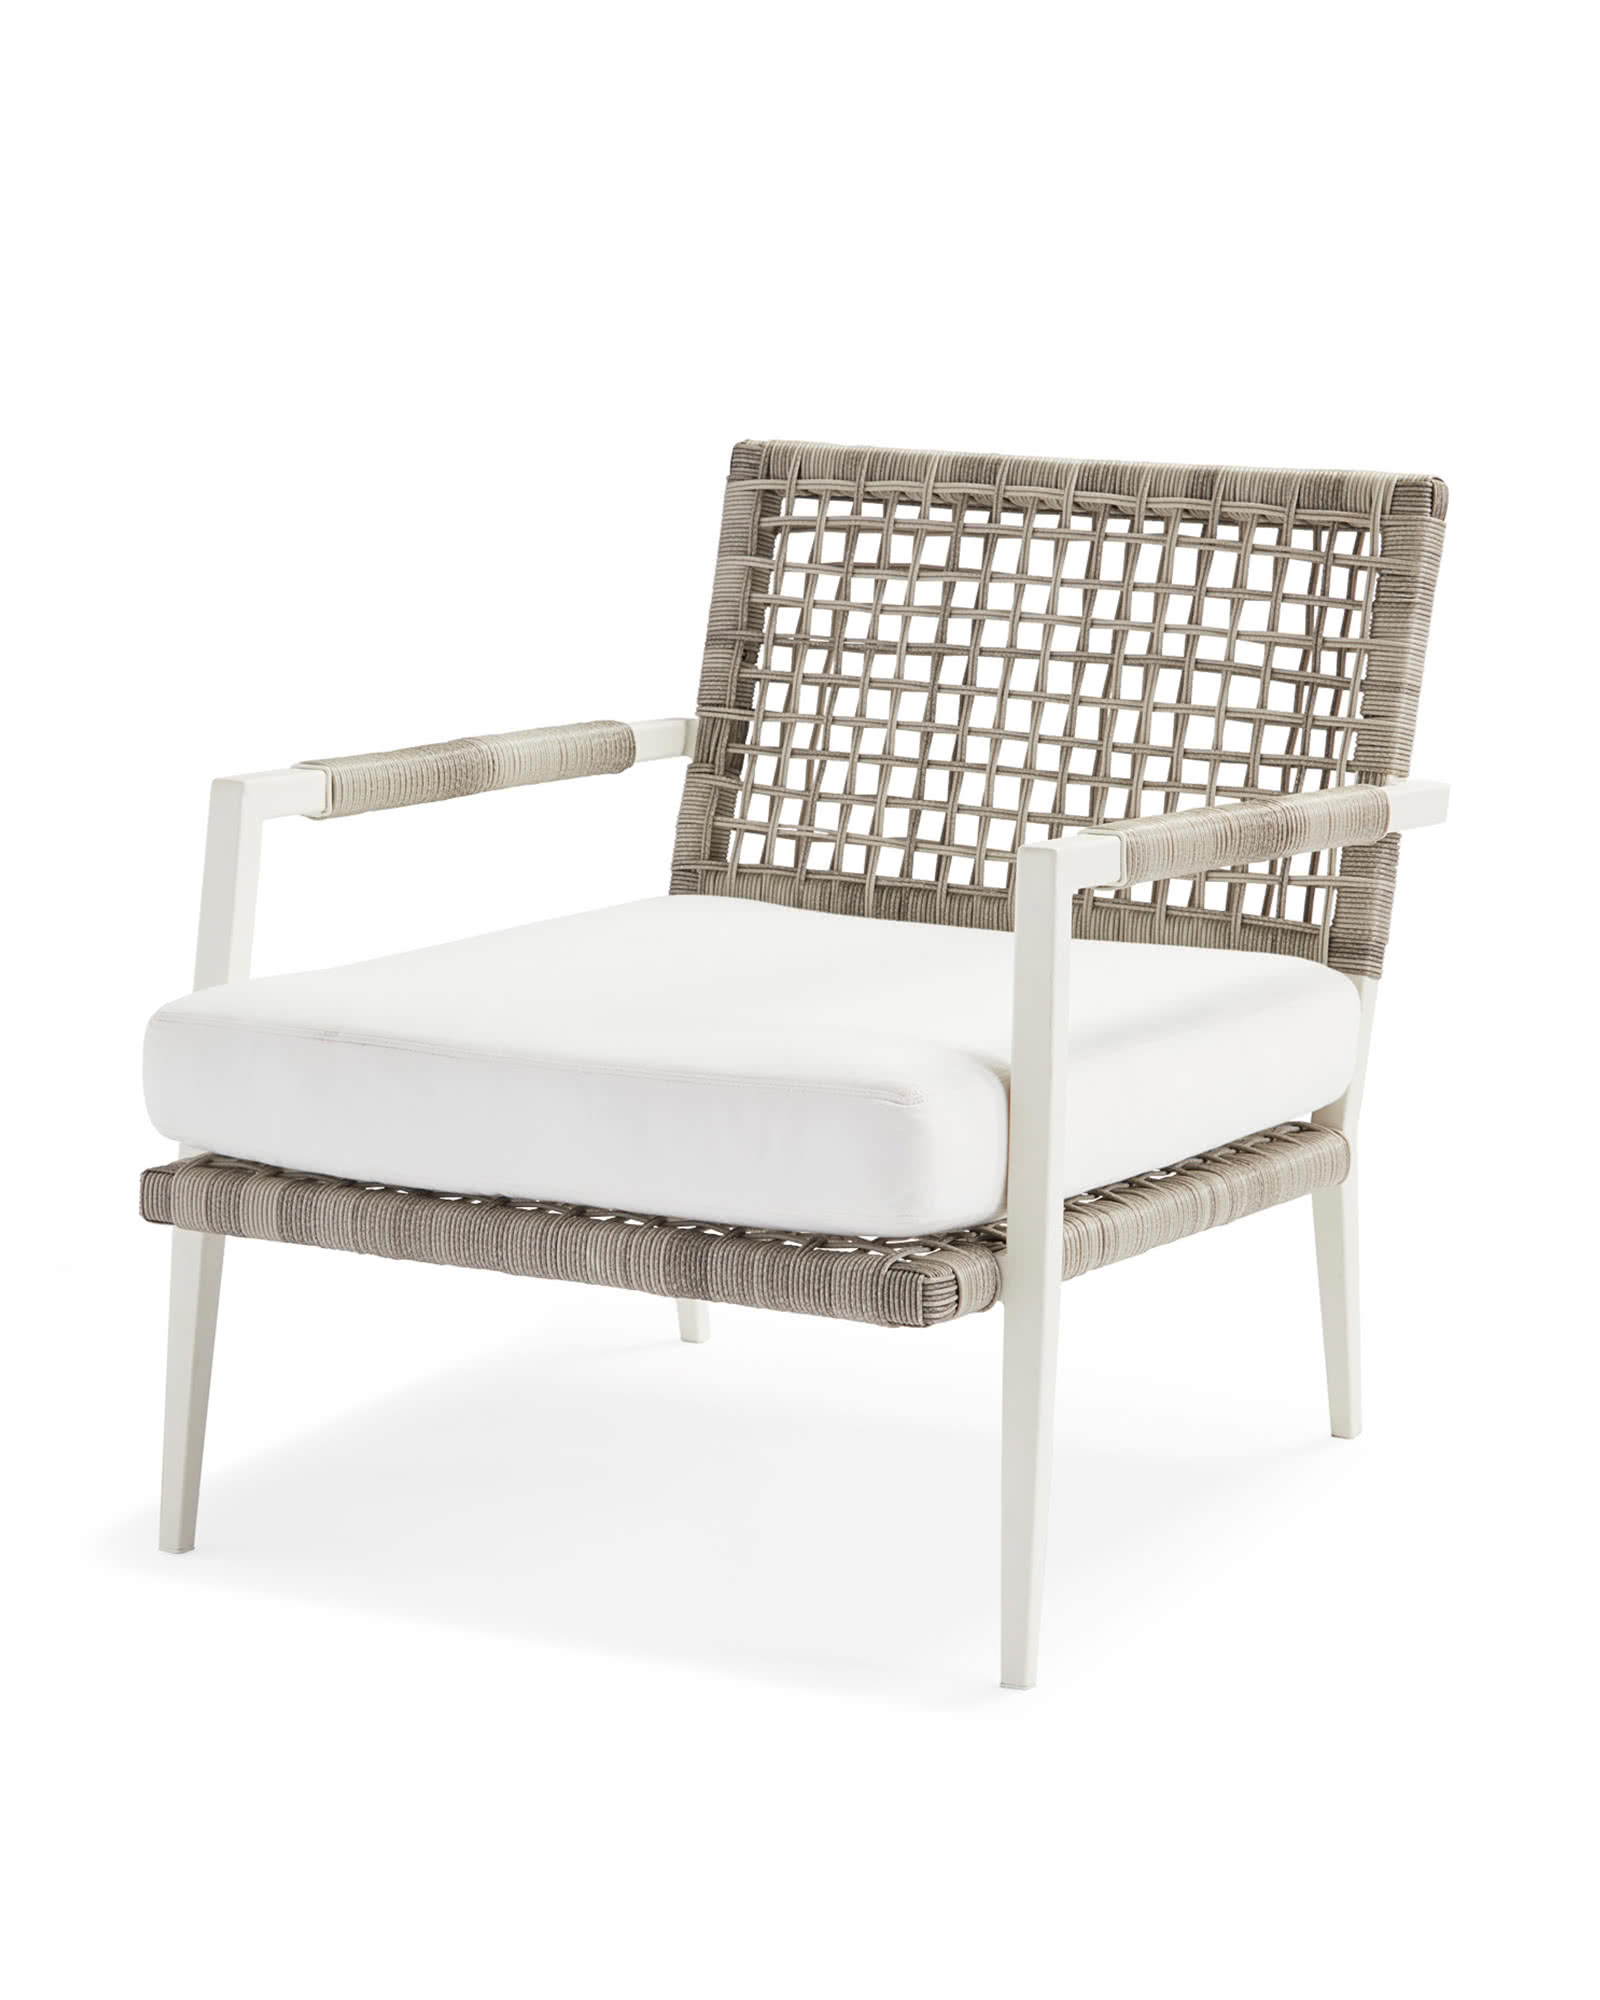 Waterfront Lounge Chair Pertaining To Well Known Lounge Chairs In White With Grey Cushions (View 14 of 25)